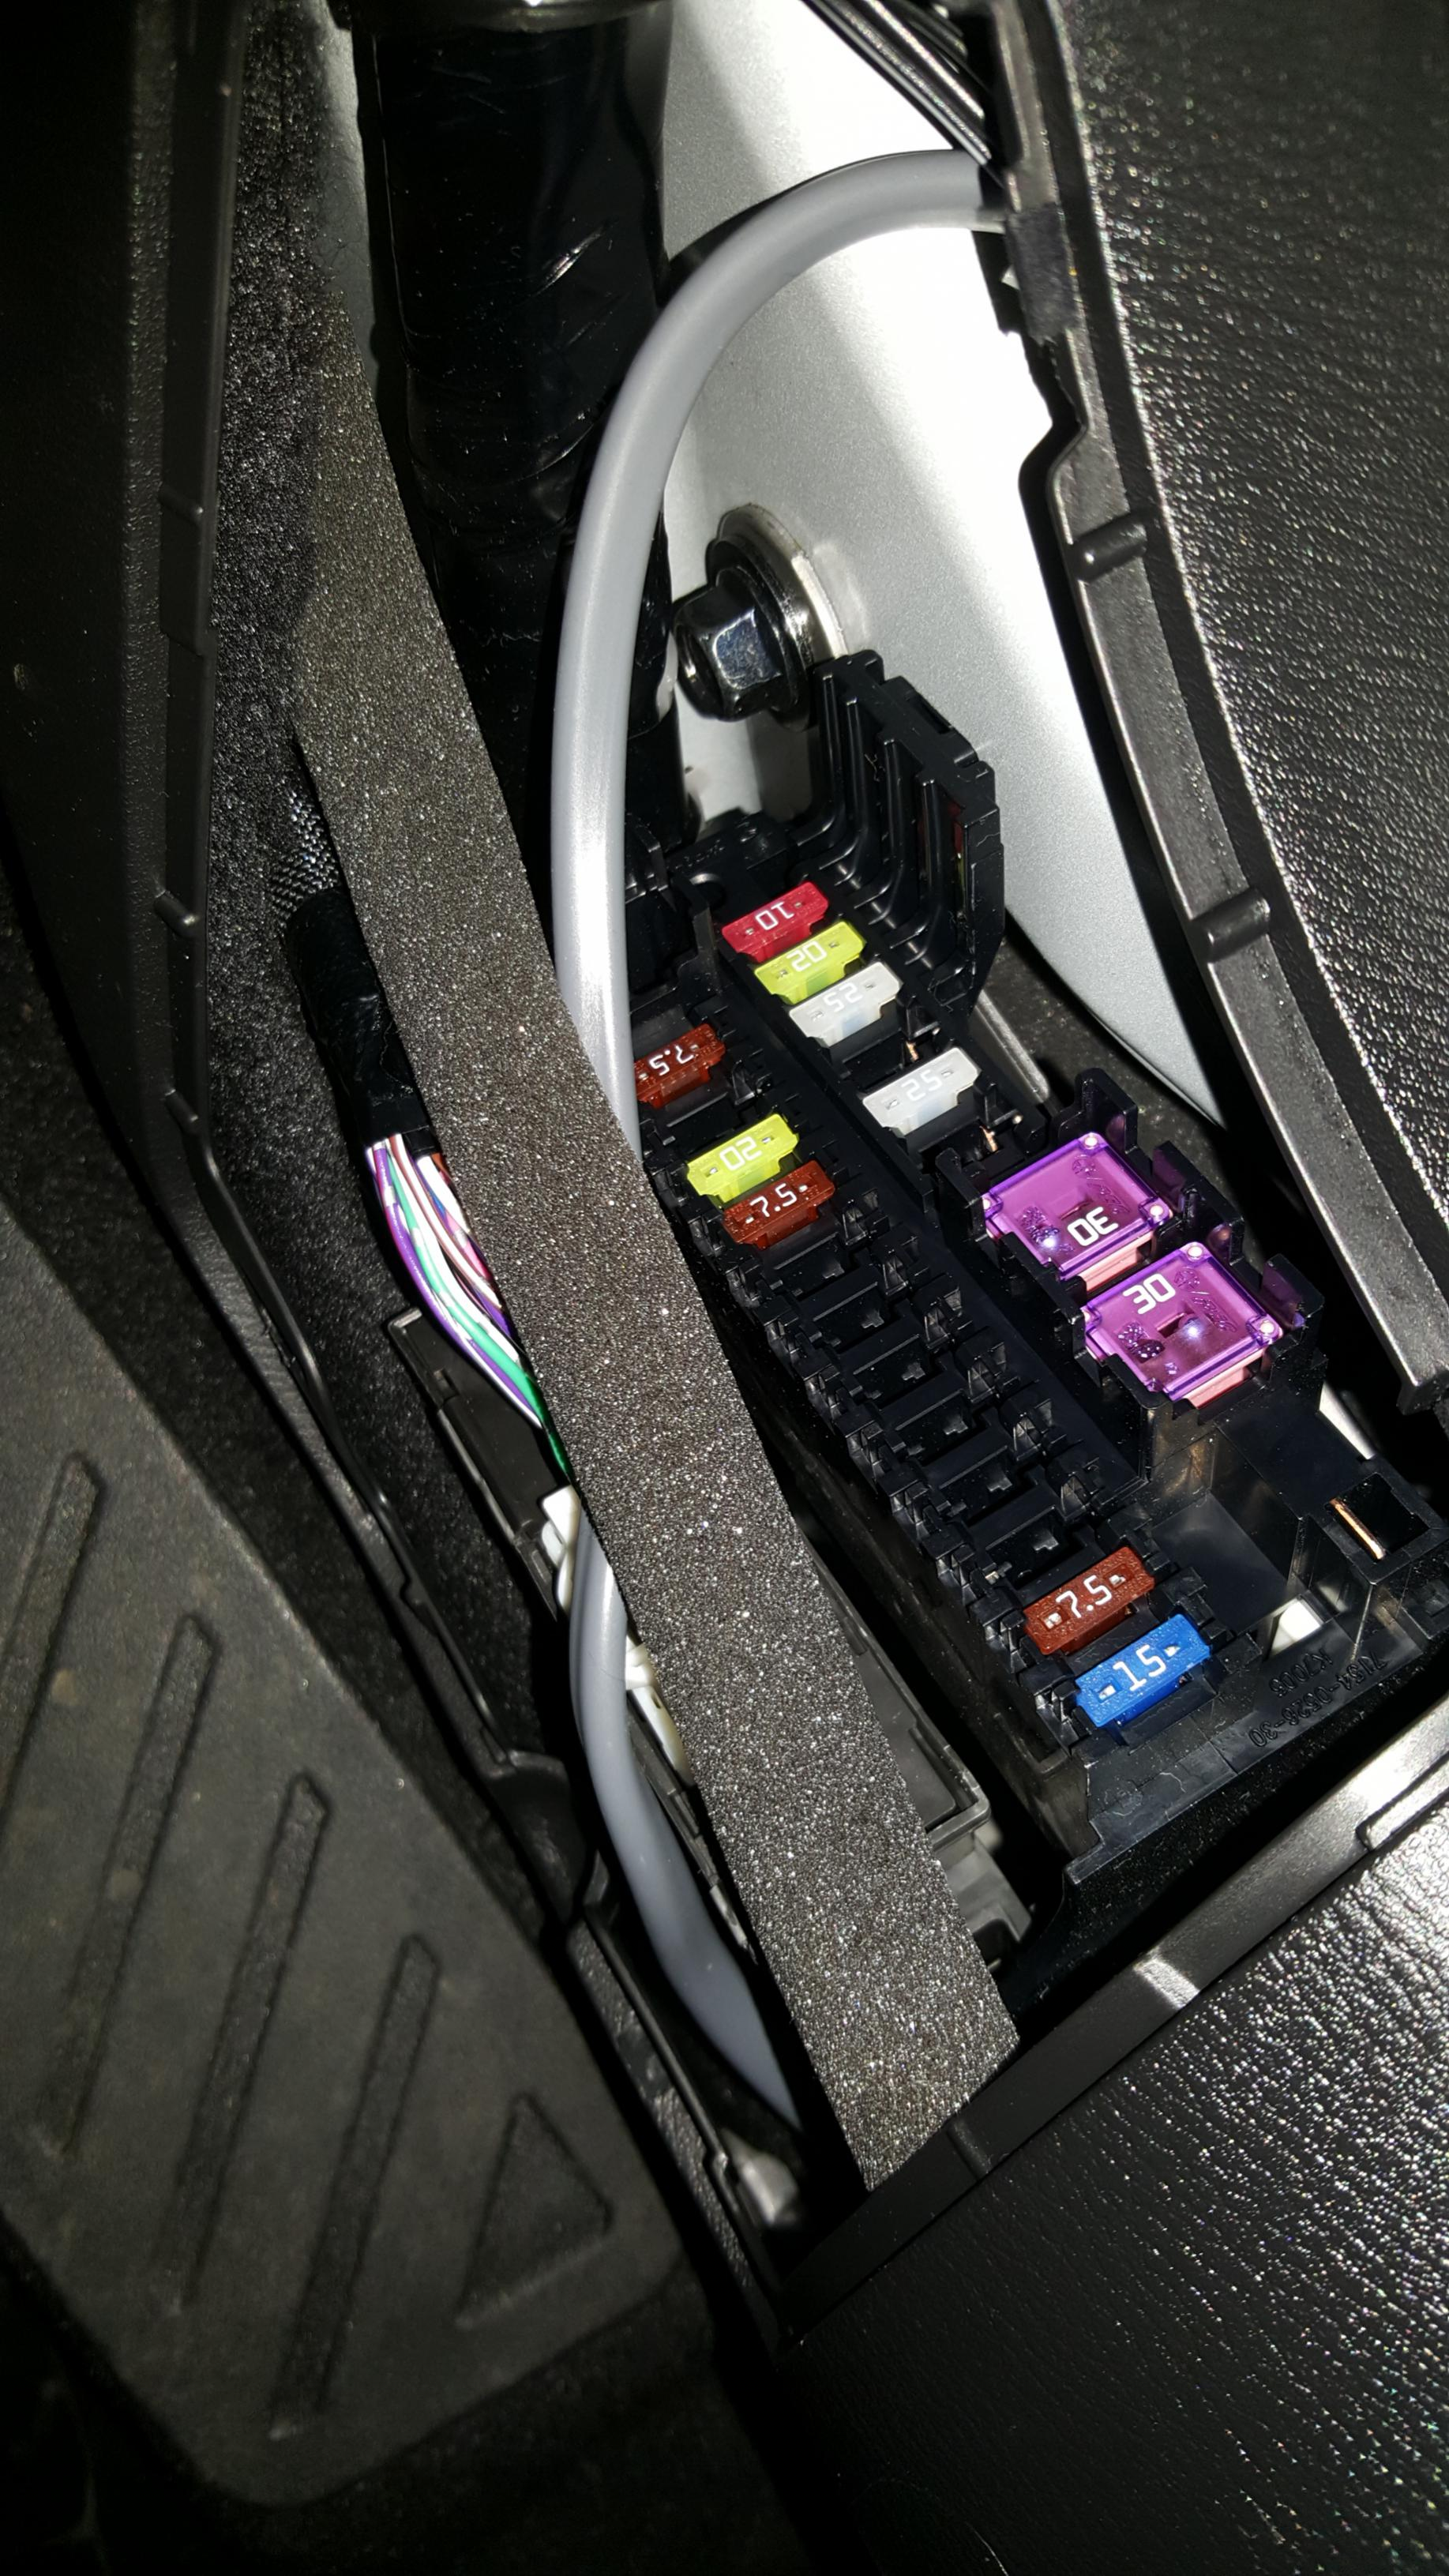 2016 Mazda 6 Puddle Lights Installed Forums 03 Fuse Box Click Image For Larger Version Name Into Area Views 764